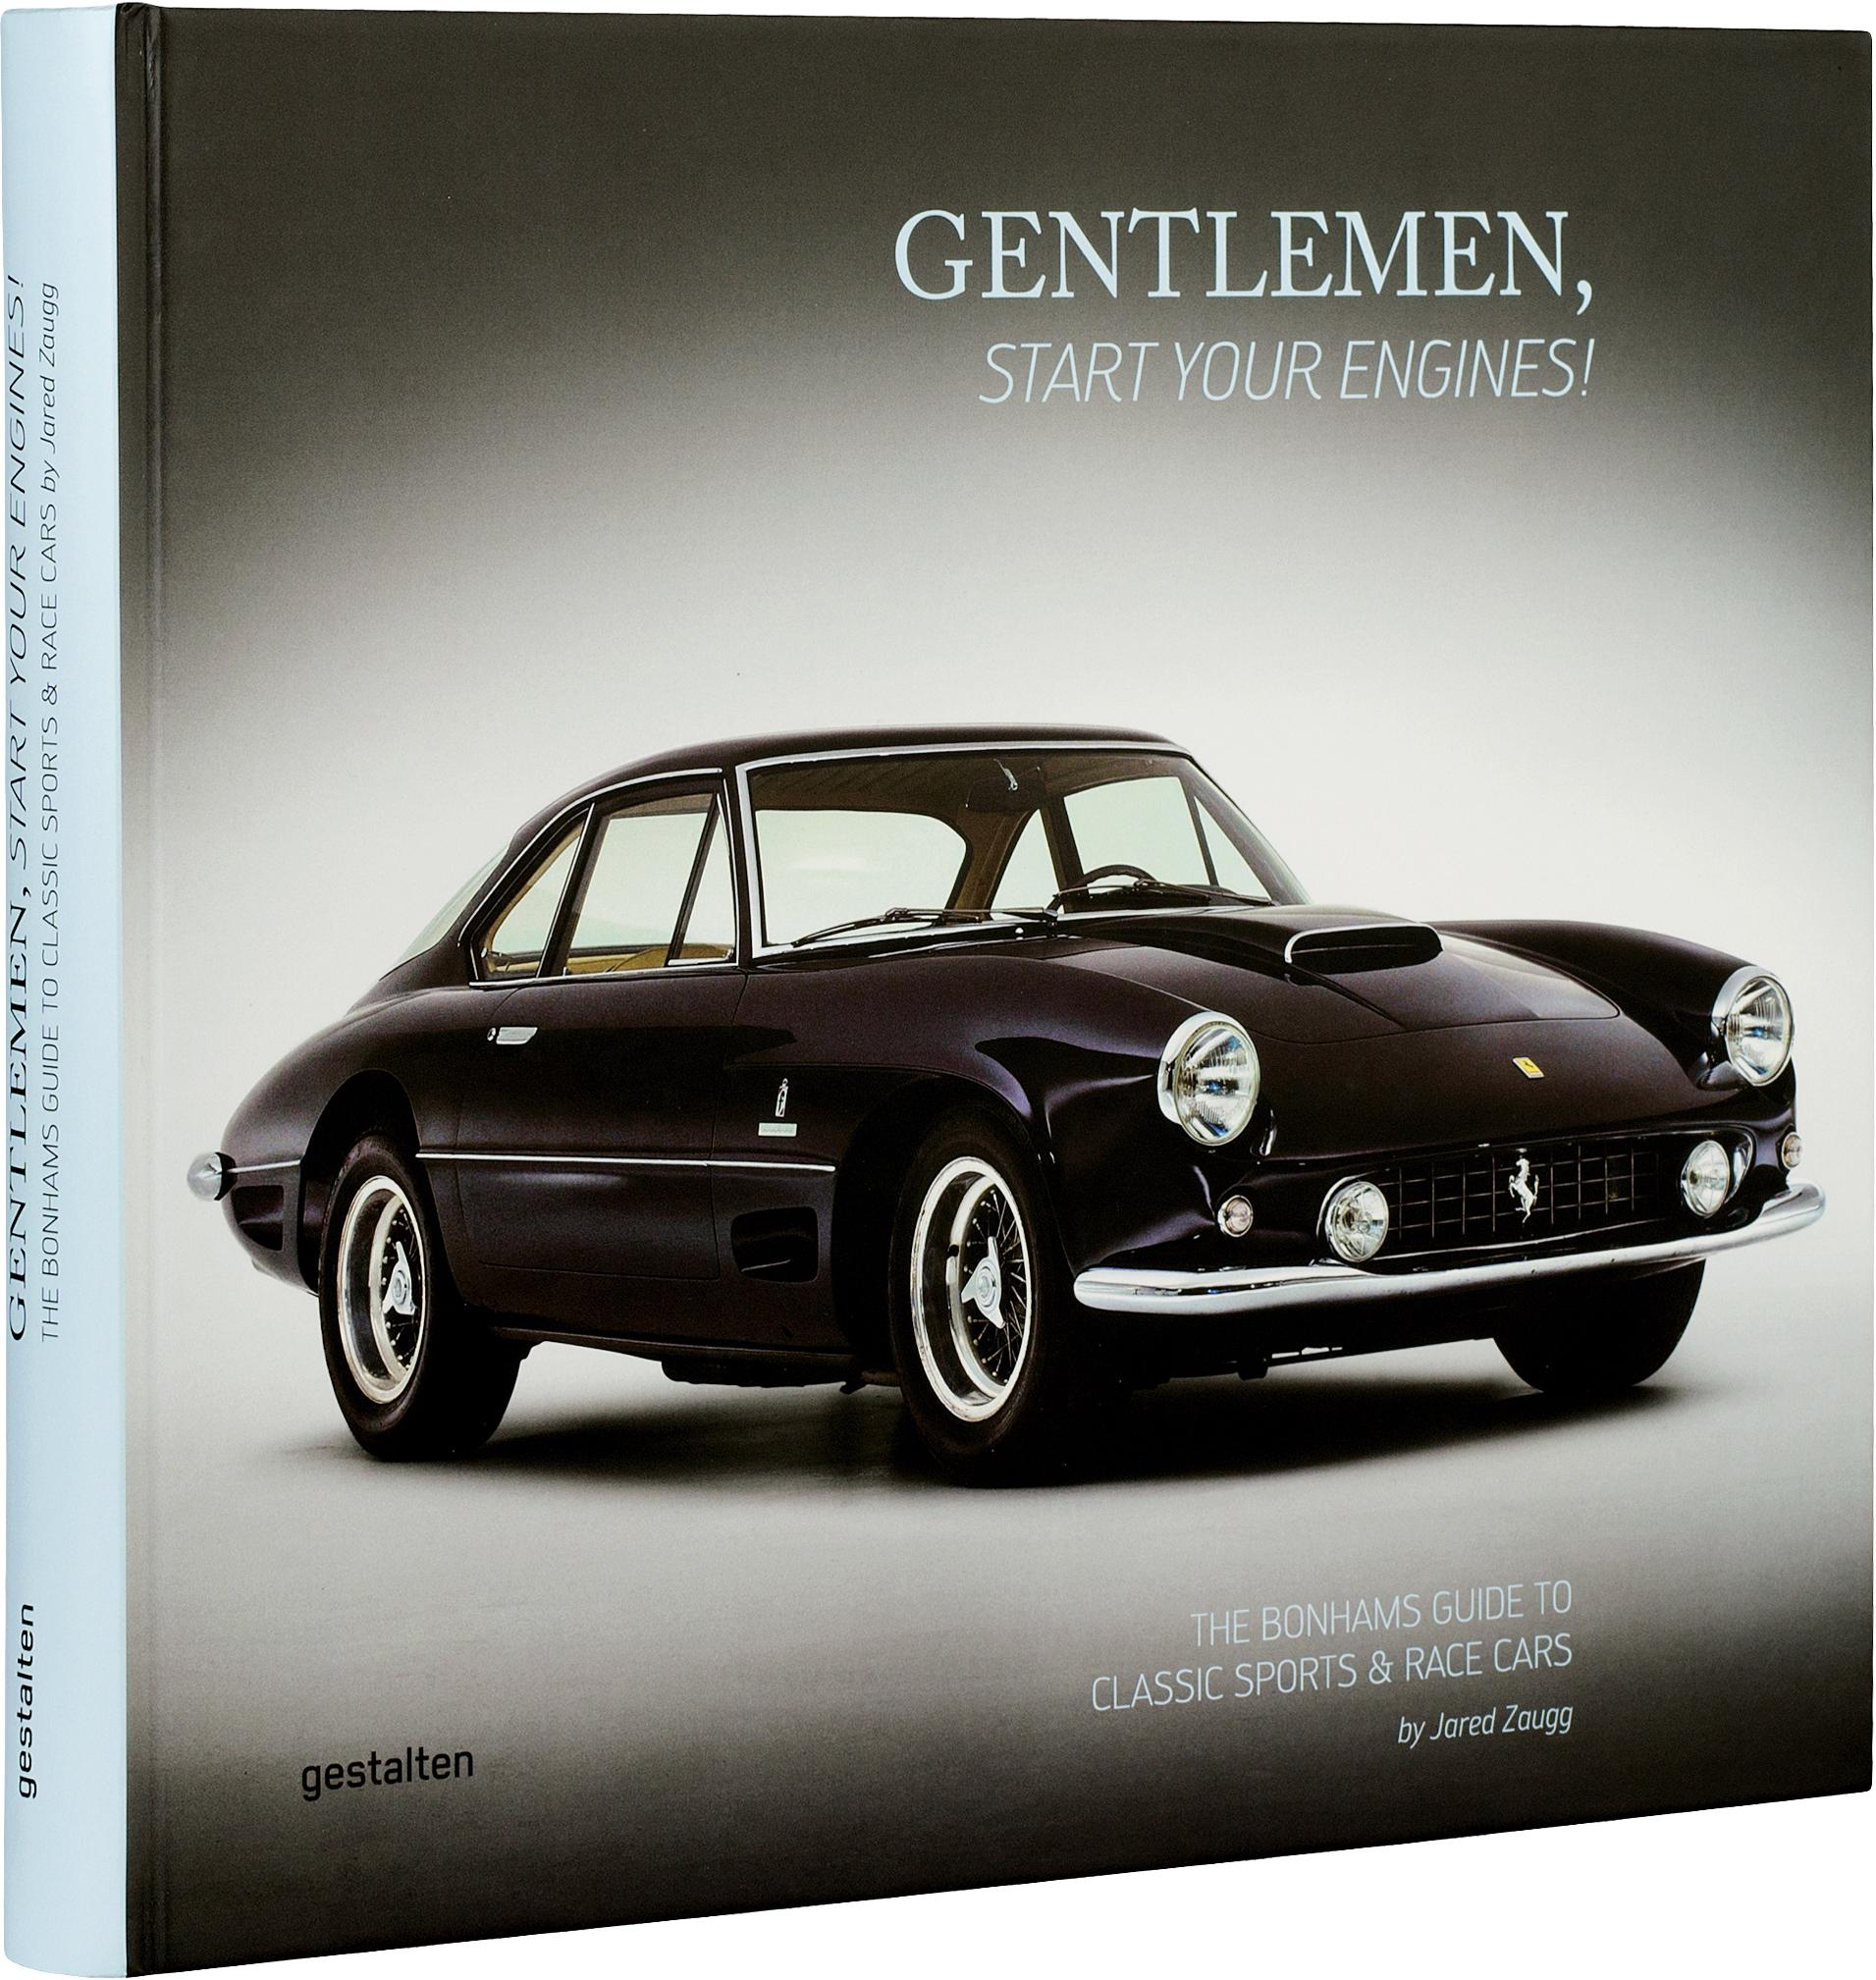 Libro Gentlemen, start your engines!, Carta, cornice rigida, Multicolore, P 27 x P 30 cm